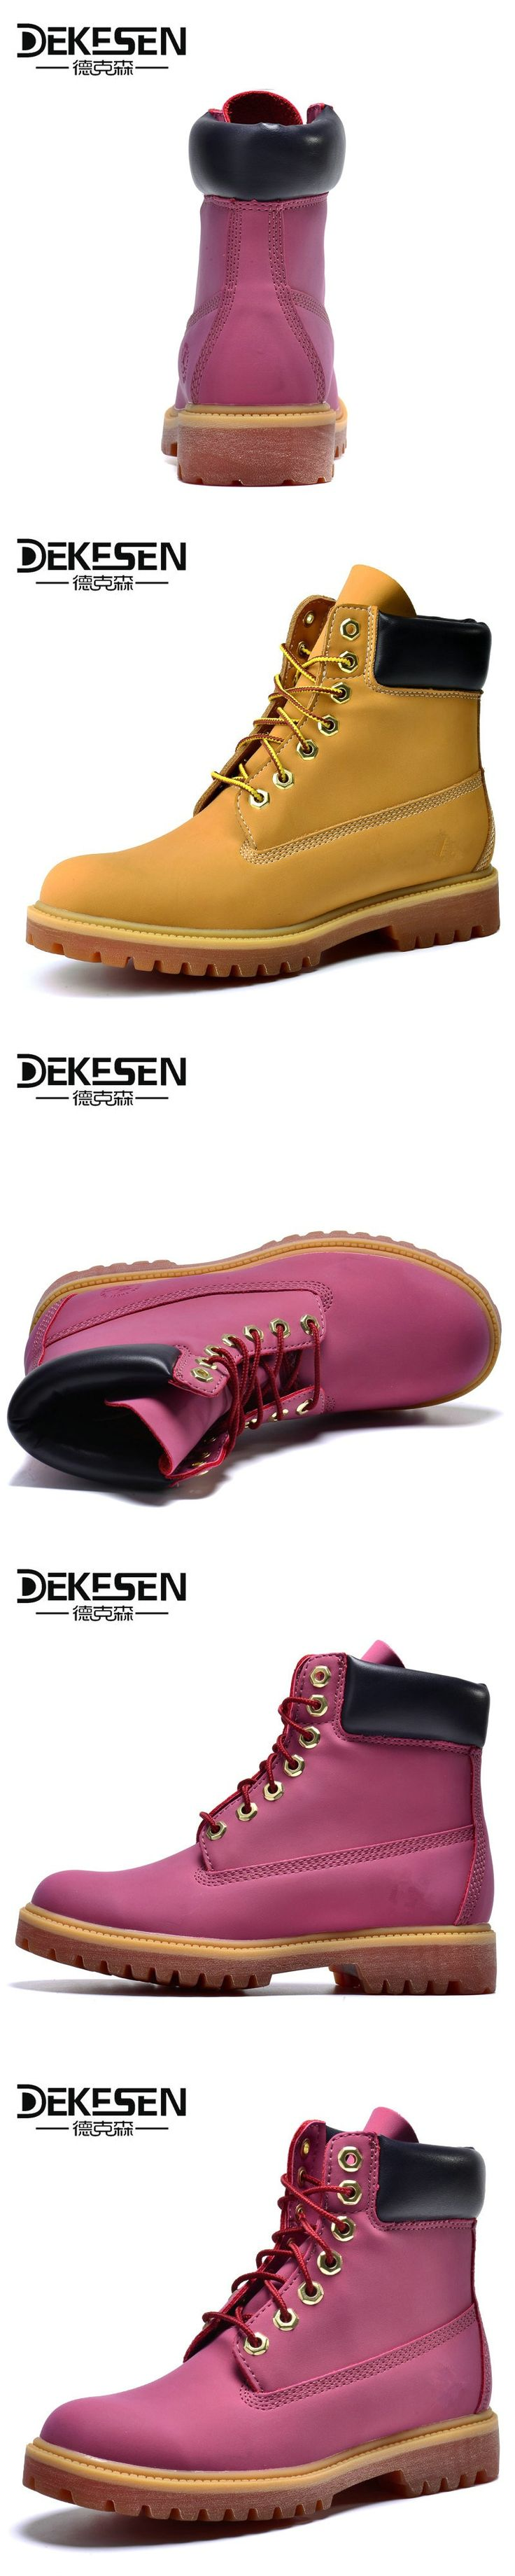 DEKESEN 2017 Spring Autumn Women martin boots Outdoor waterproof Lady Genuine leather boots Brand high quality snow shoes women